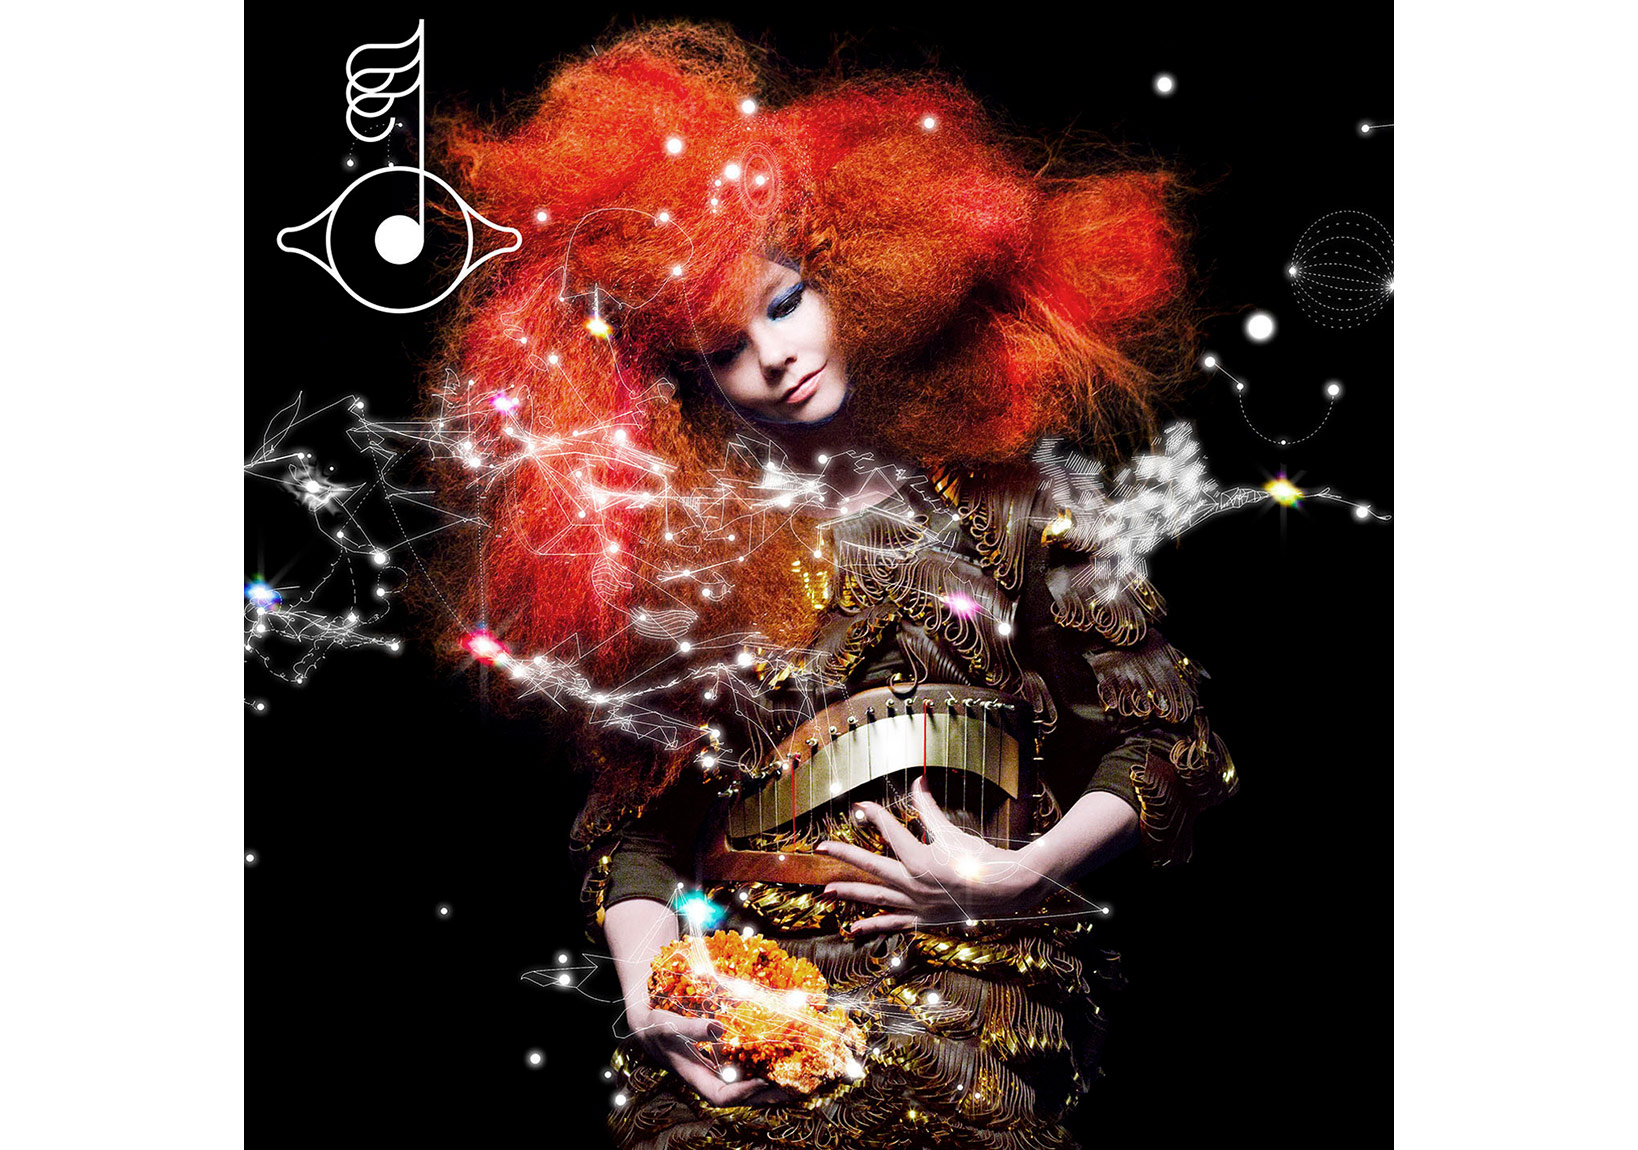 Björk, Biophilia, 2011Credit: By M/M (Paris) Photographed by Inez van Lamsweerde & Vinoodh Matadin. Image courtesy of Wellhart Ltd & One Little Indian